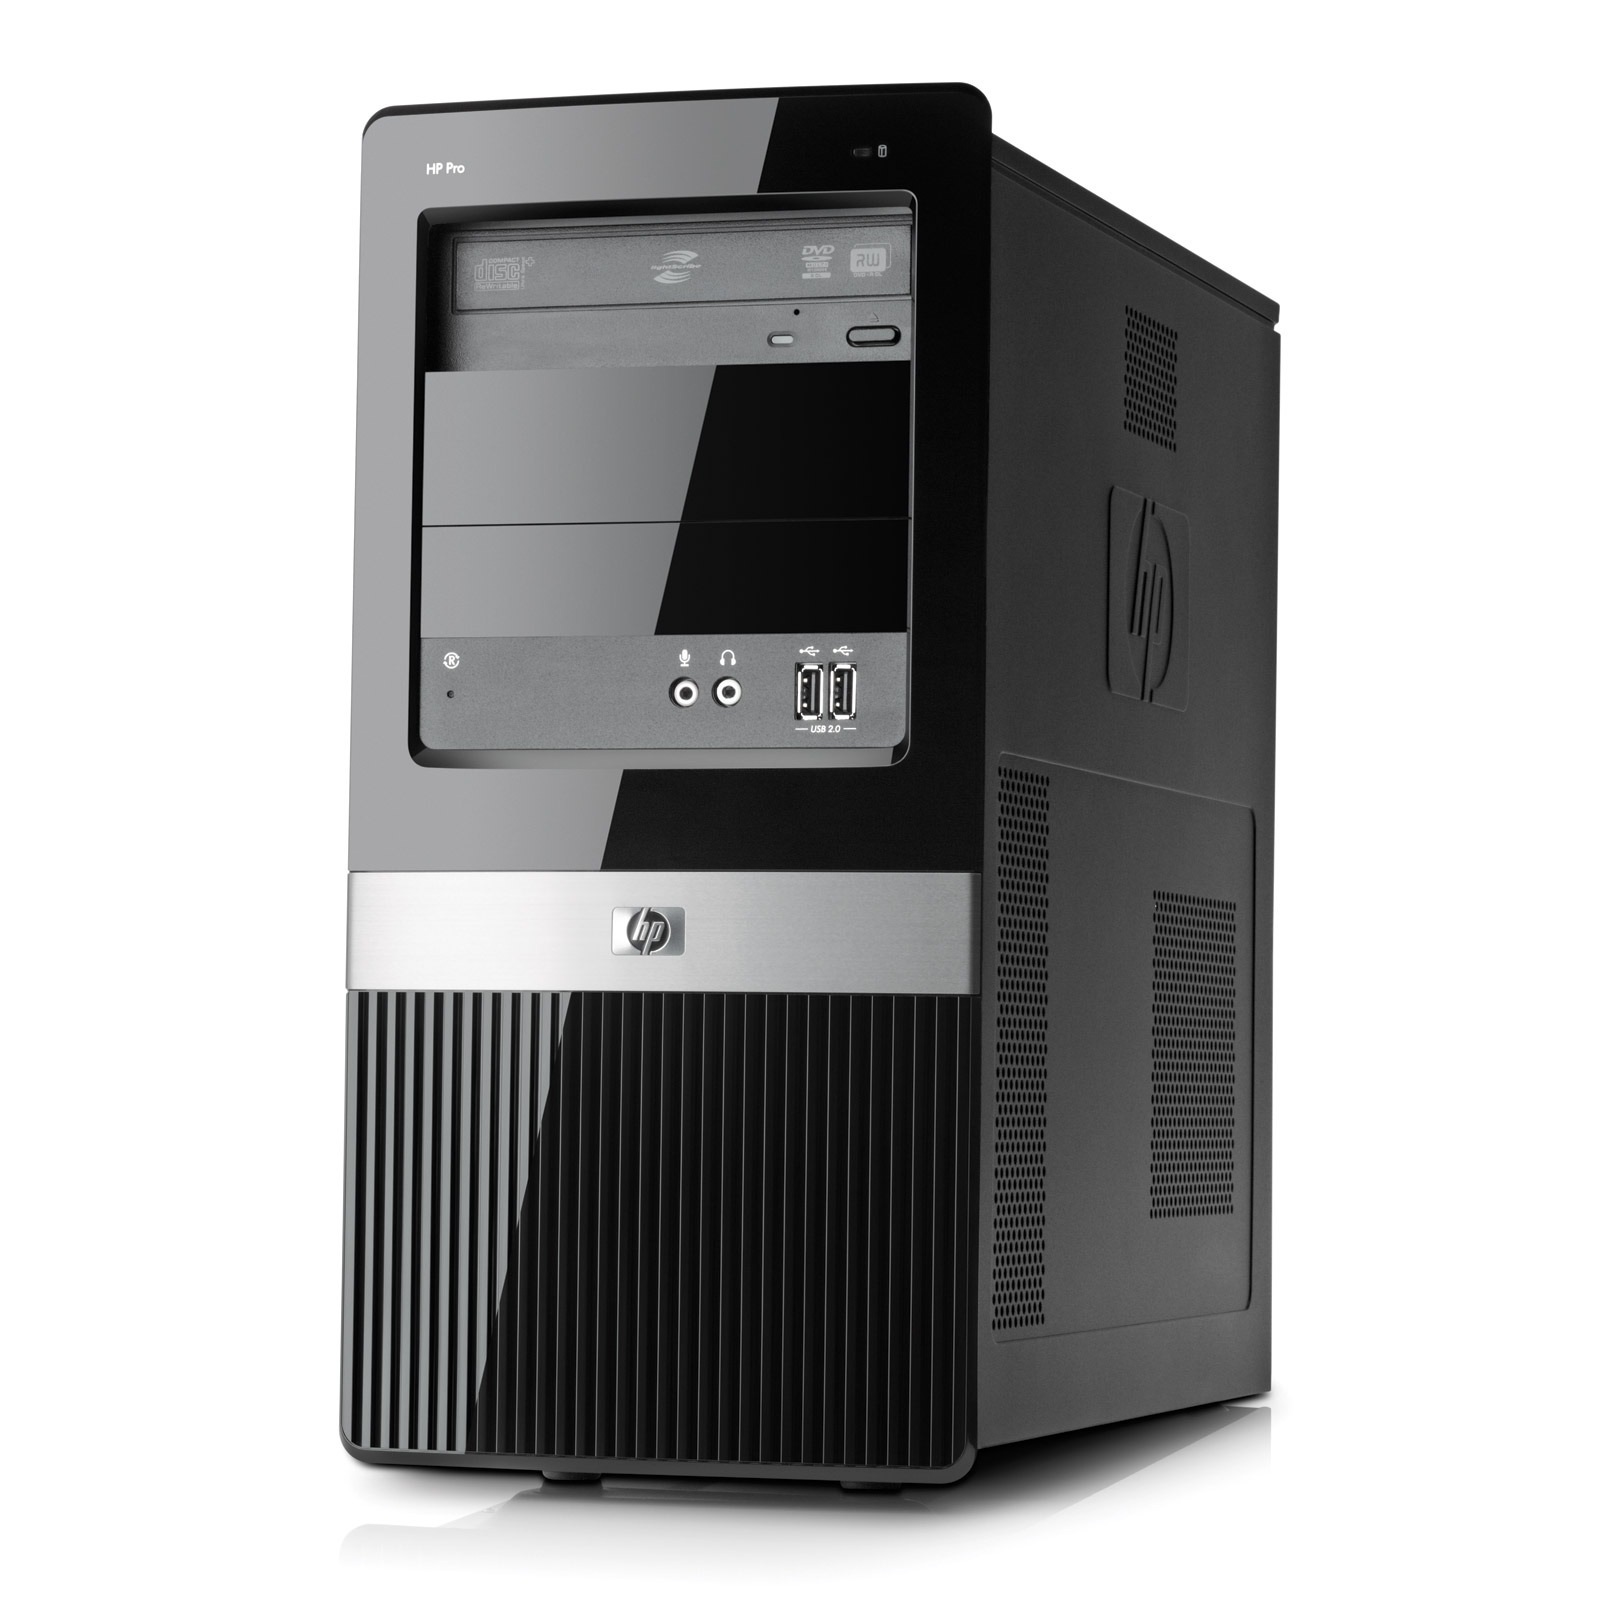 Hp pro 3120 wu146ea pc de bureau hp sur ldlc - Ordinateur de bureau hp intel core i7 ...